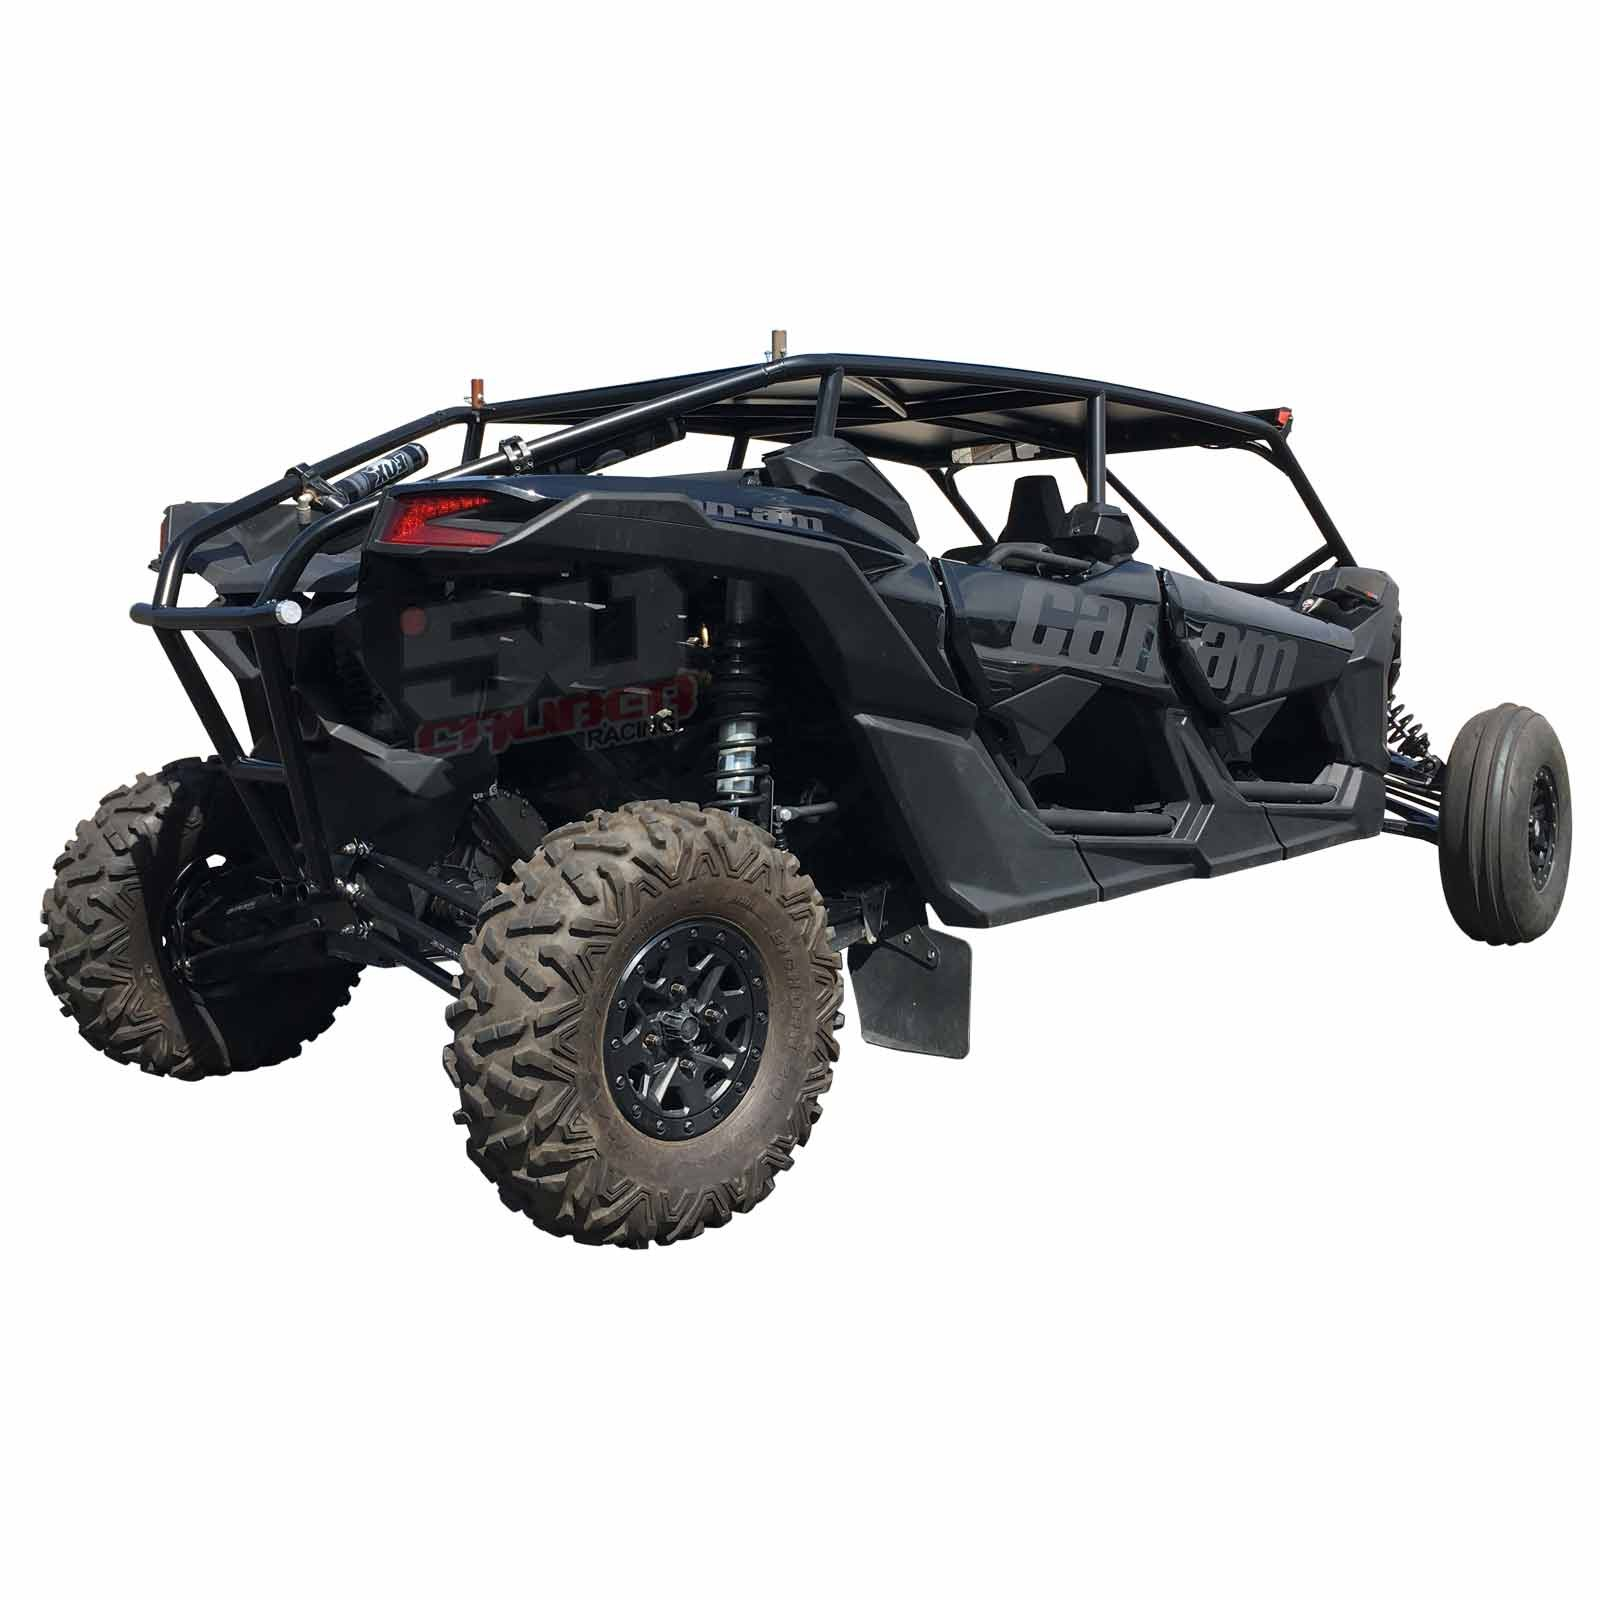 x3 am seater cage race pro seat roll maverick custom side max xrs cages utv xrc turbo bump performance call